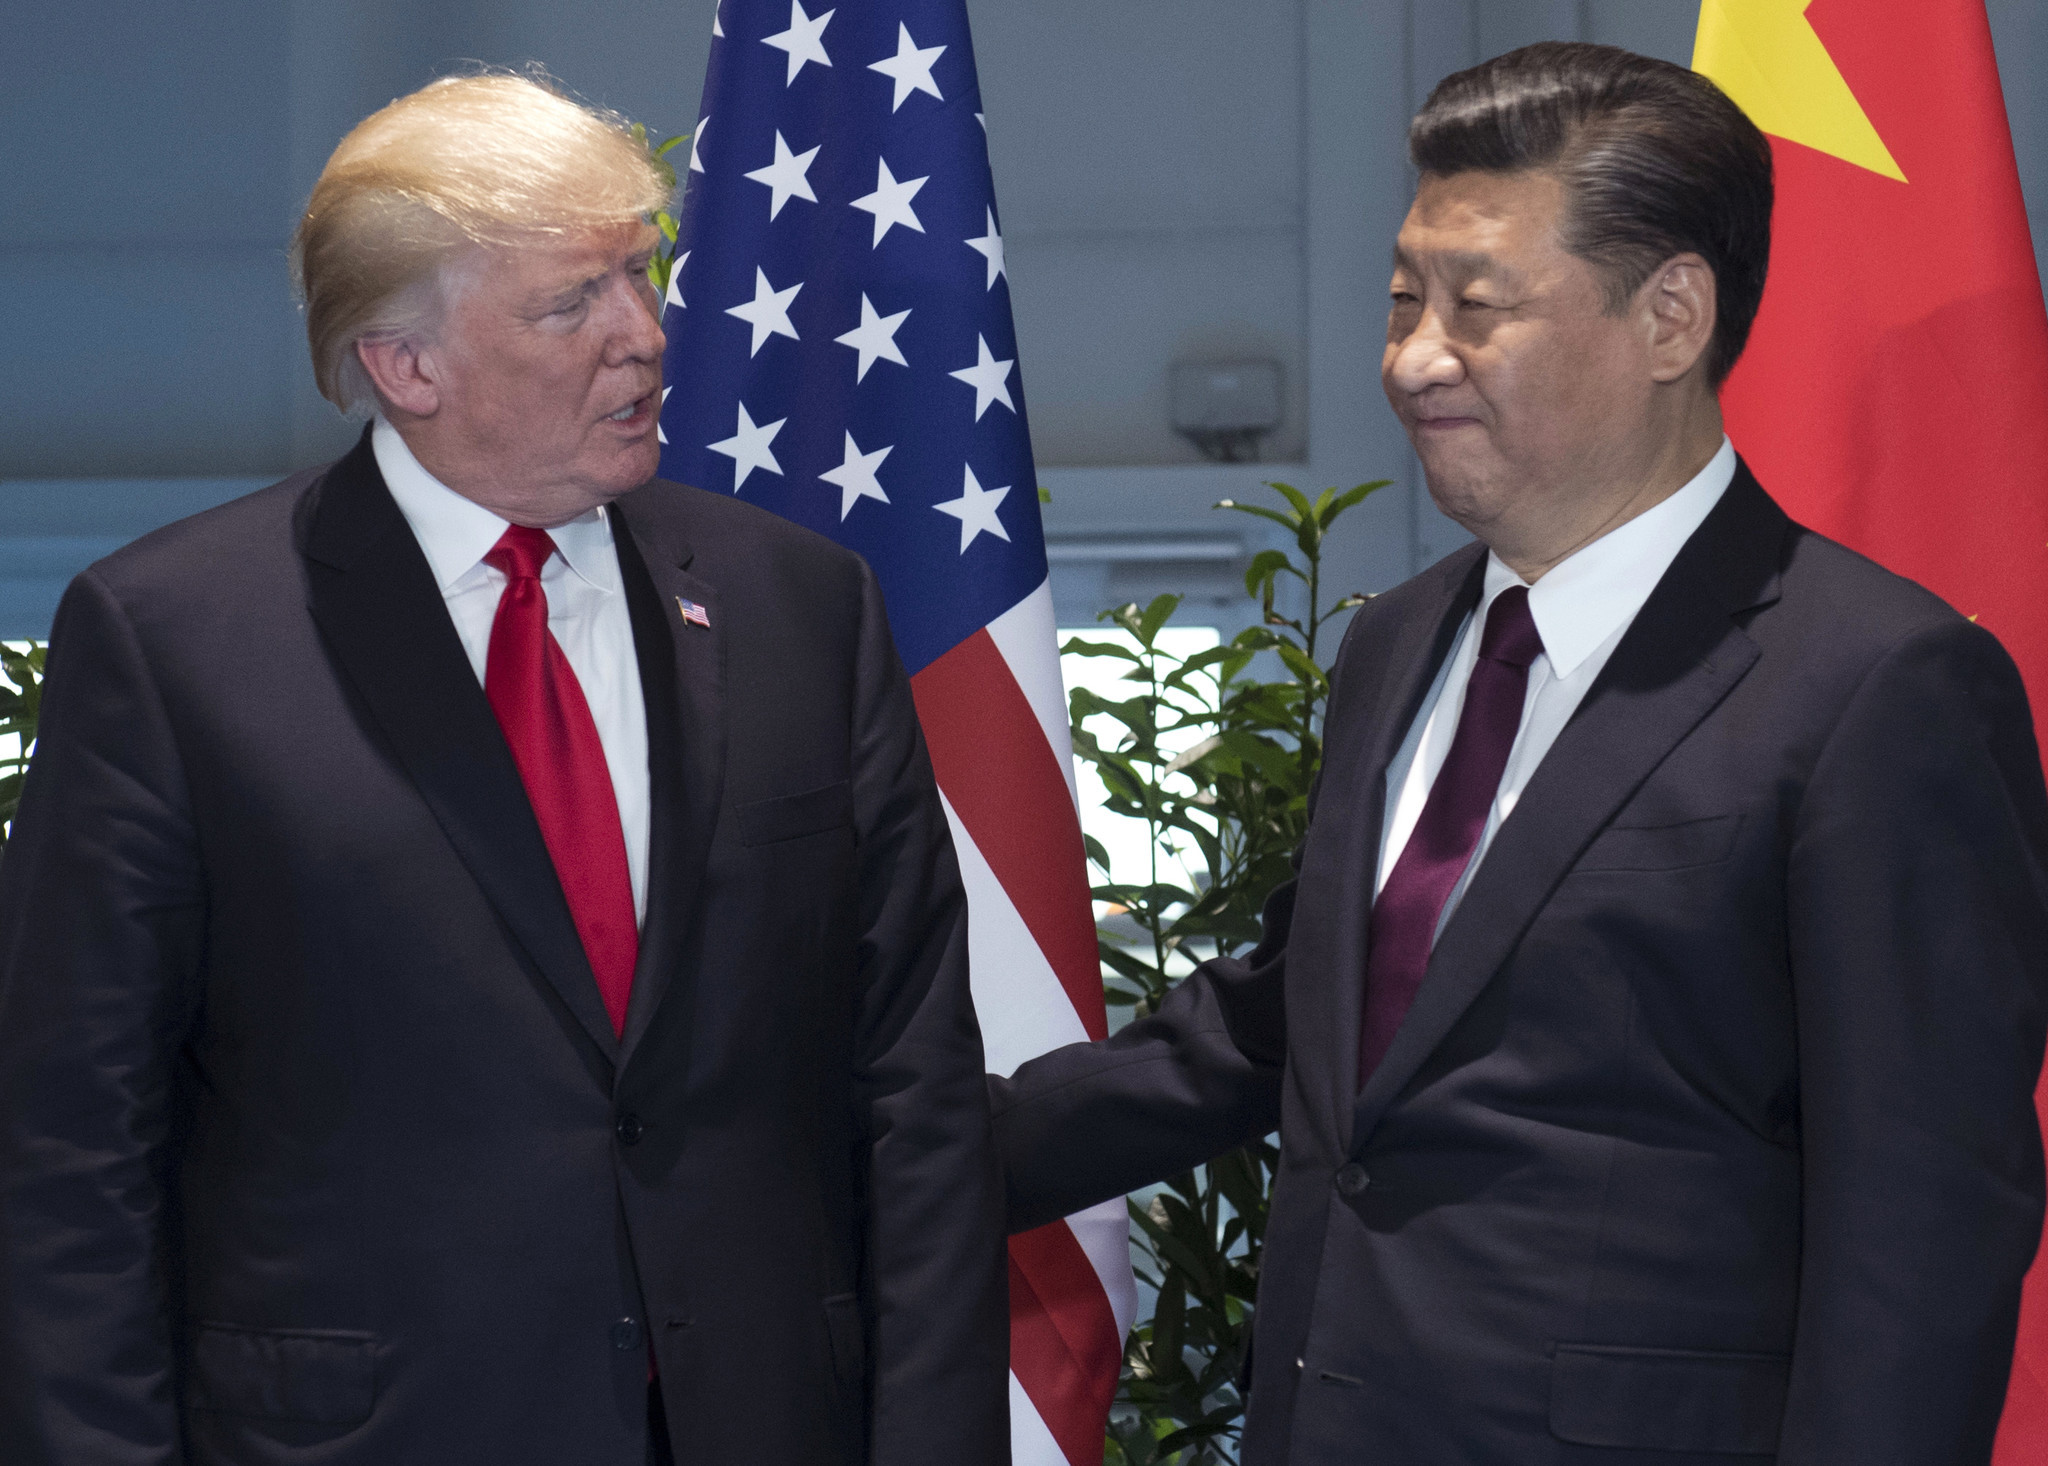 China's president calls for calm after Trump says U.S. is 'locked and loaded'